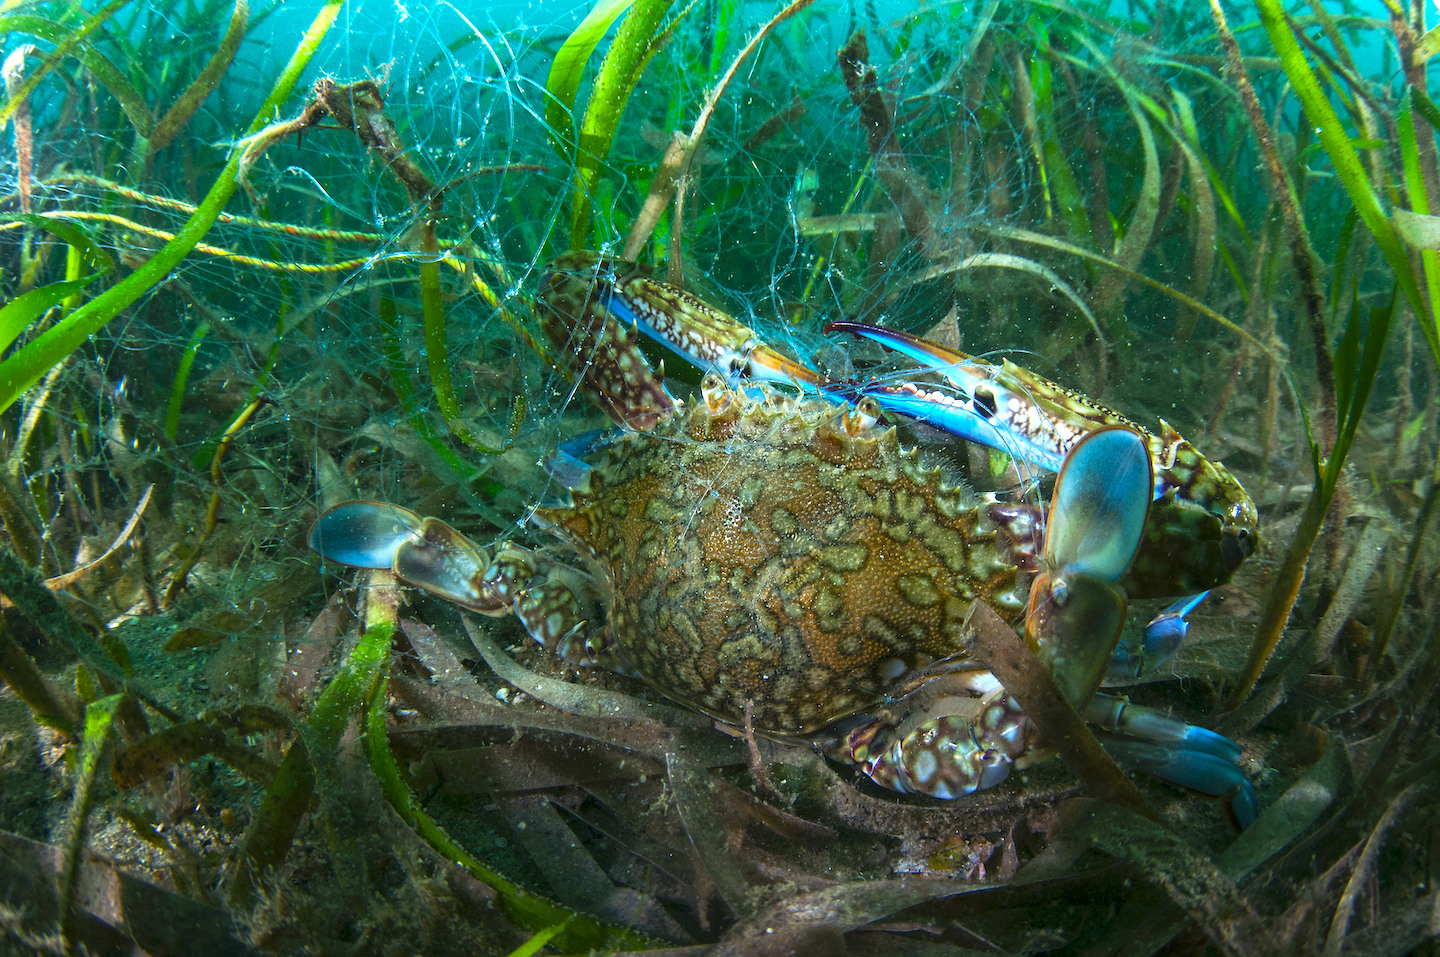 Crabs(Portunus sps) love seagreass beds for the abundant matter they can feed on, but these shallow residences mean they are also easier tangled in a fishing net. Photo: Umeed Mistry